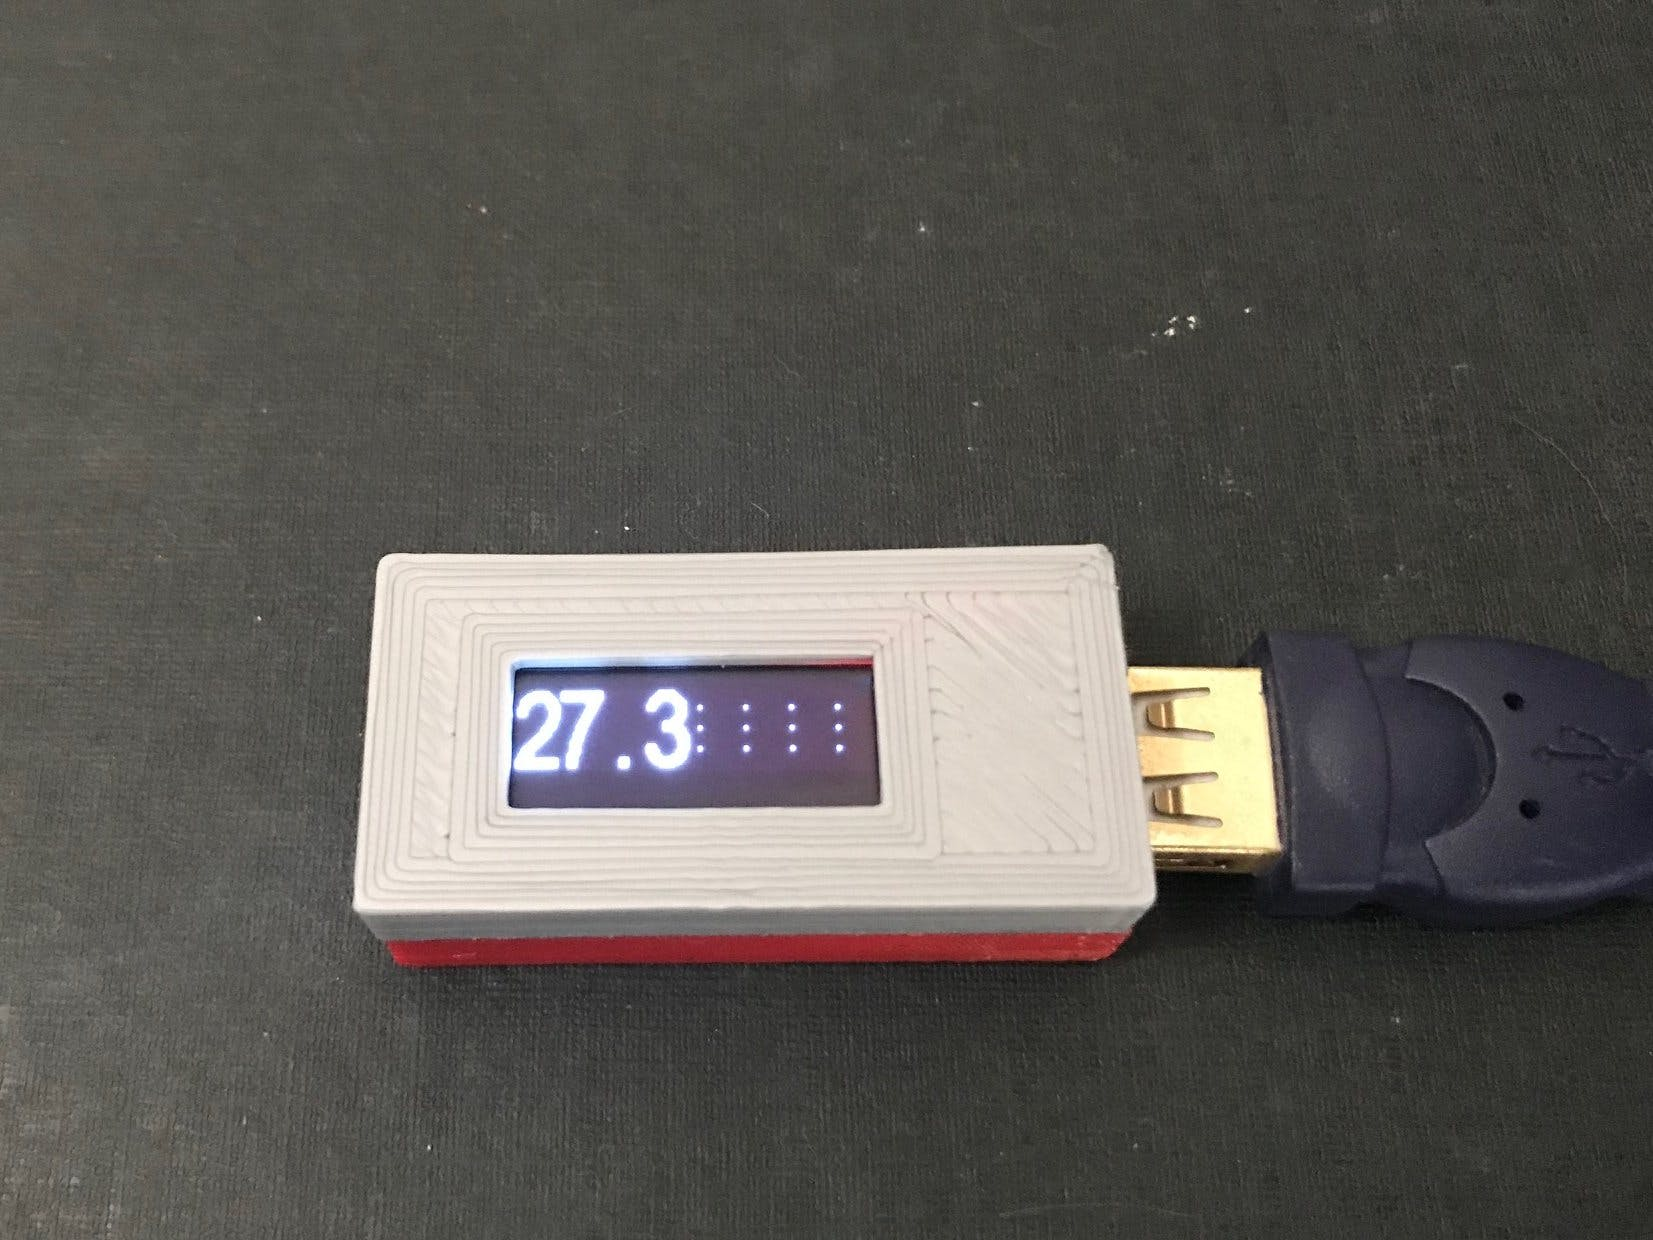 DigiSpark Thermostat with DHT12 and OLED